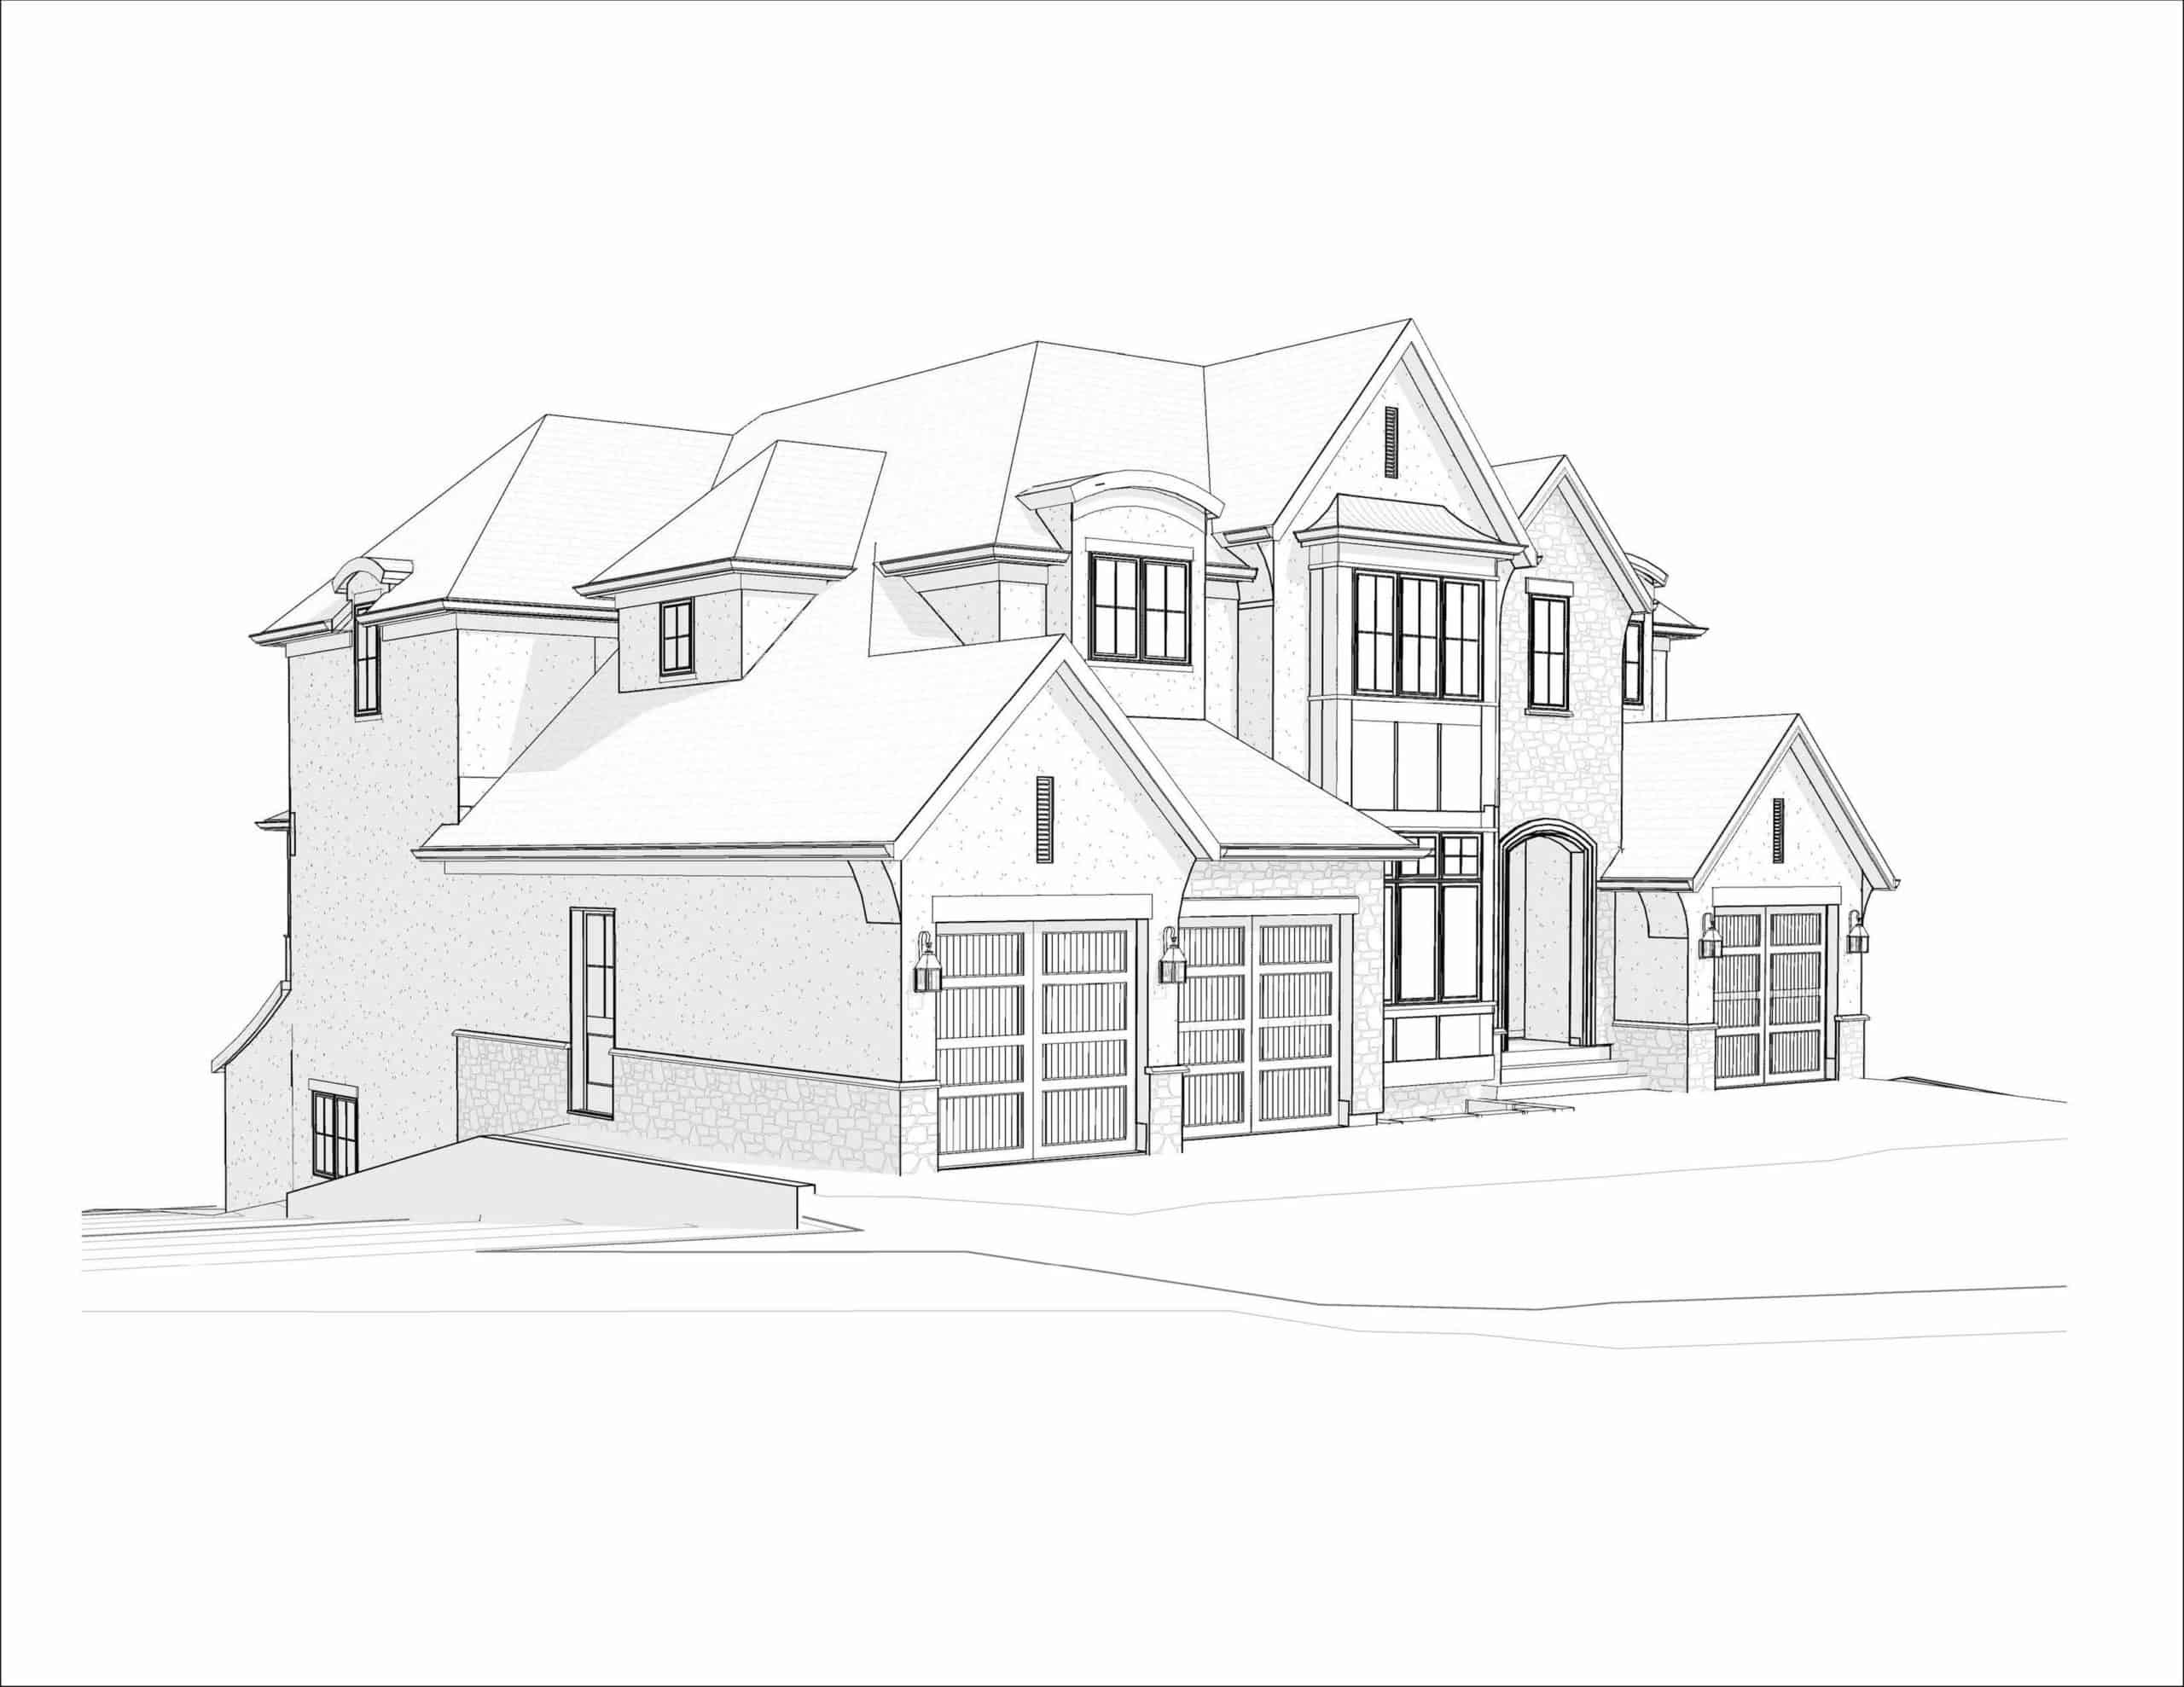 Edelweiss English Manor residential architecture design